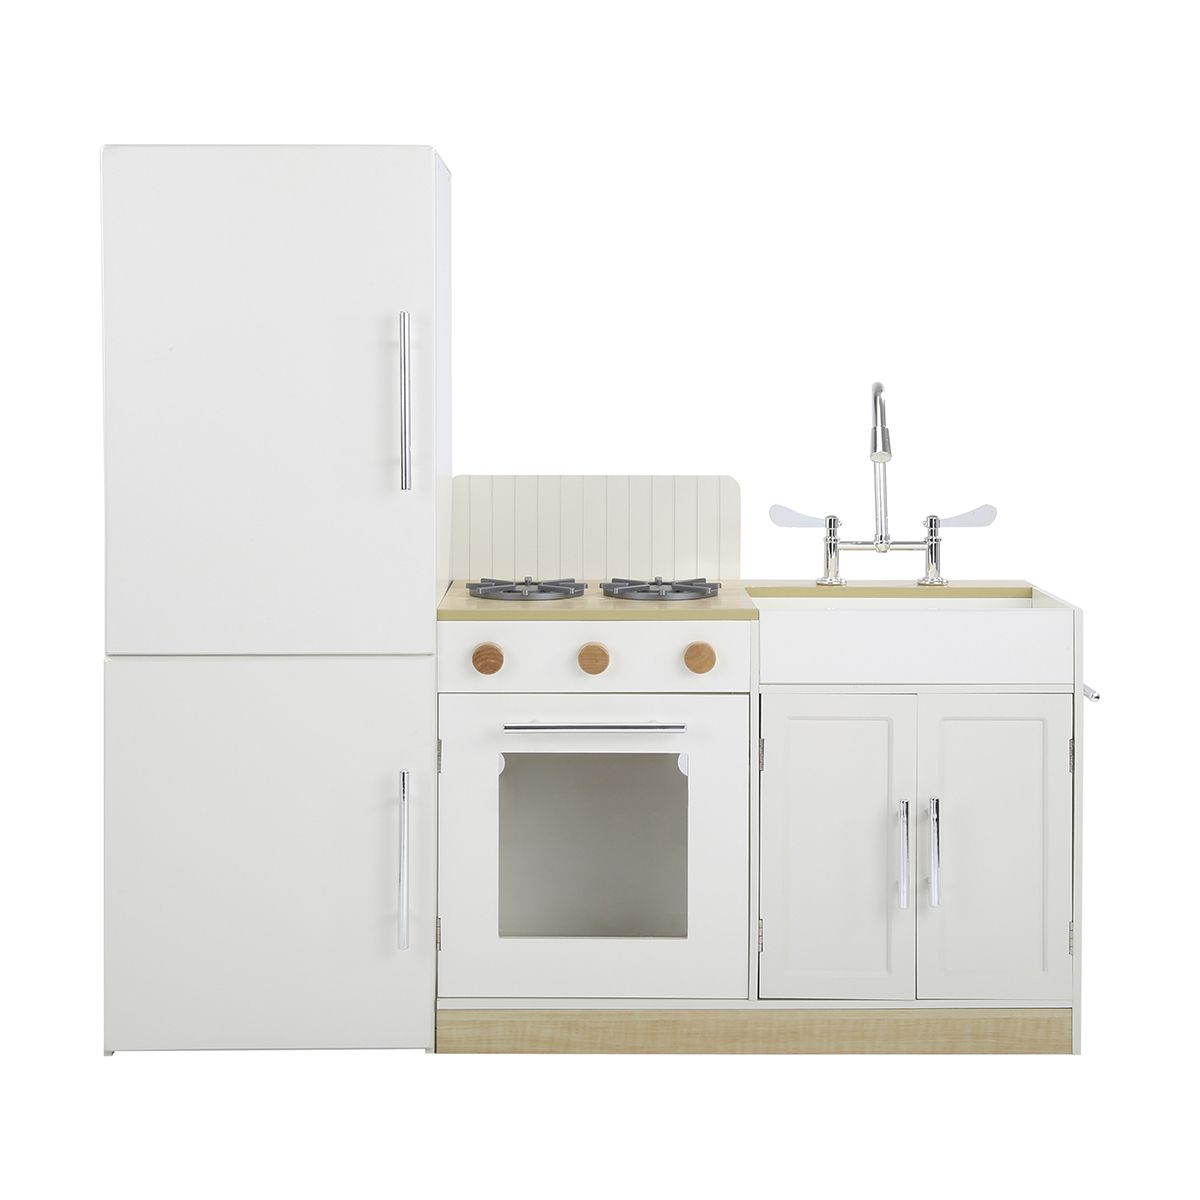 Deluxe Wooden Kitchen Playset | Kmart | If I ever have ...